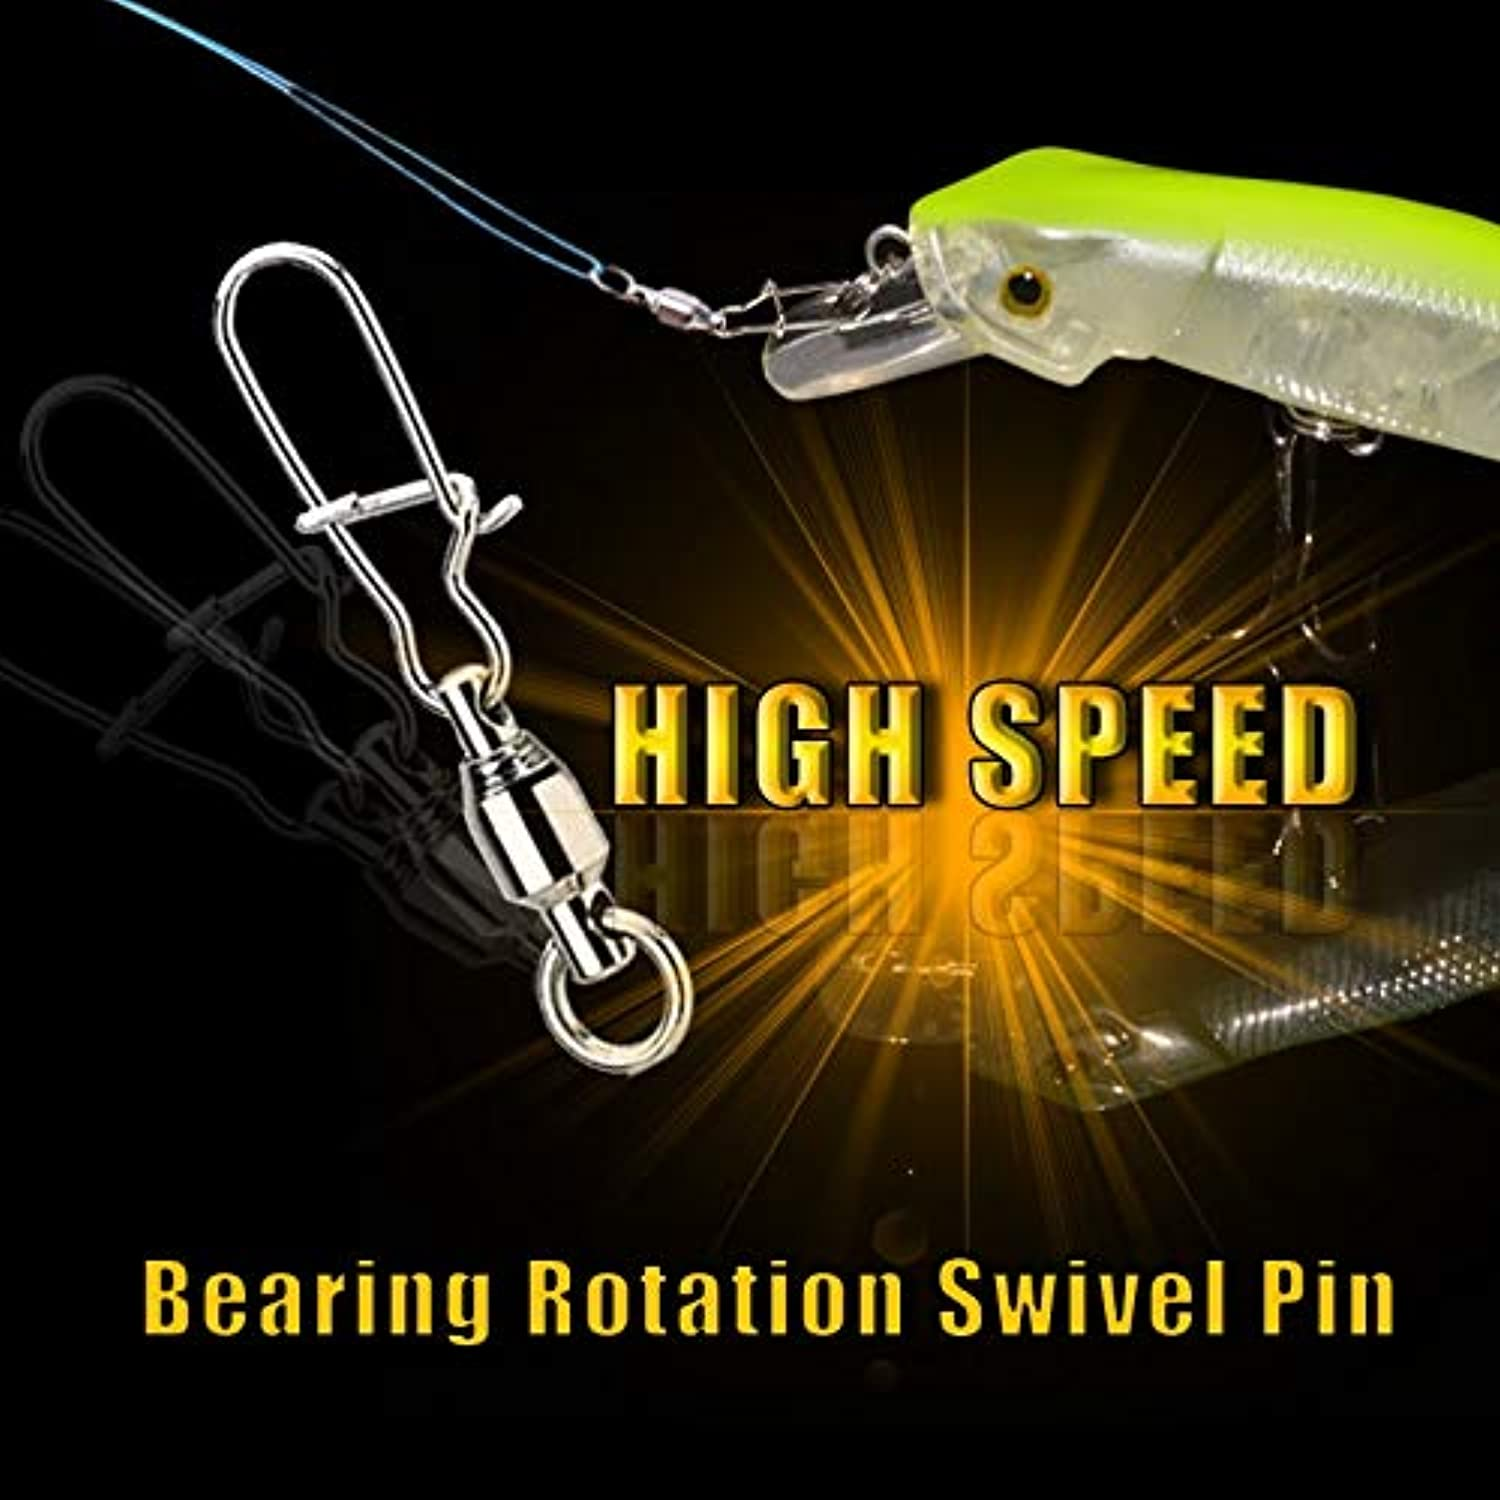 CUSHY 10pcs lot Stainless Steel HighSpeed redation pin Lure Swivel Enhanced pin  0  1  2  3  4  5  6  7  8  9  10 Fishing Accessories  10